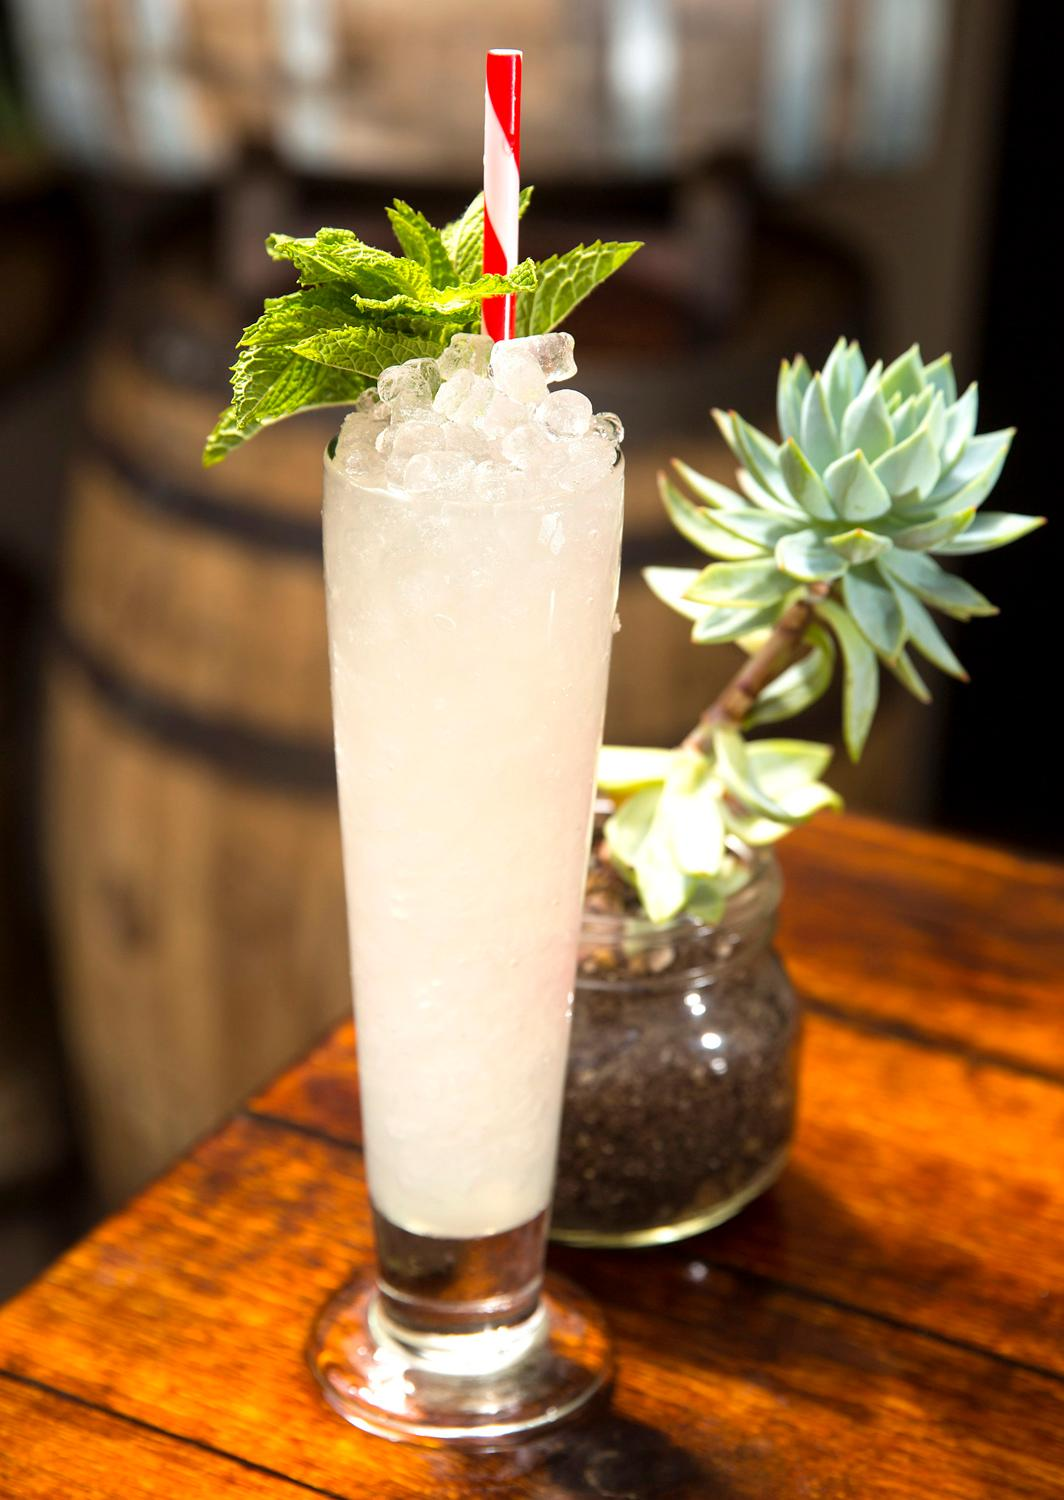 Can't Stand the Rain from Herb &amp;amp; Bitter, made up from{&amp;nbsp;}mezcal, tequila, pear brandy, lime juice, a liqueur made from the resin of the mastic tree, Crème de menthe and topped with mint garnish. (Sy Bean / Seattle Refined)<p></p>